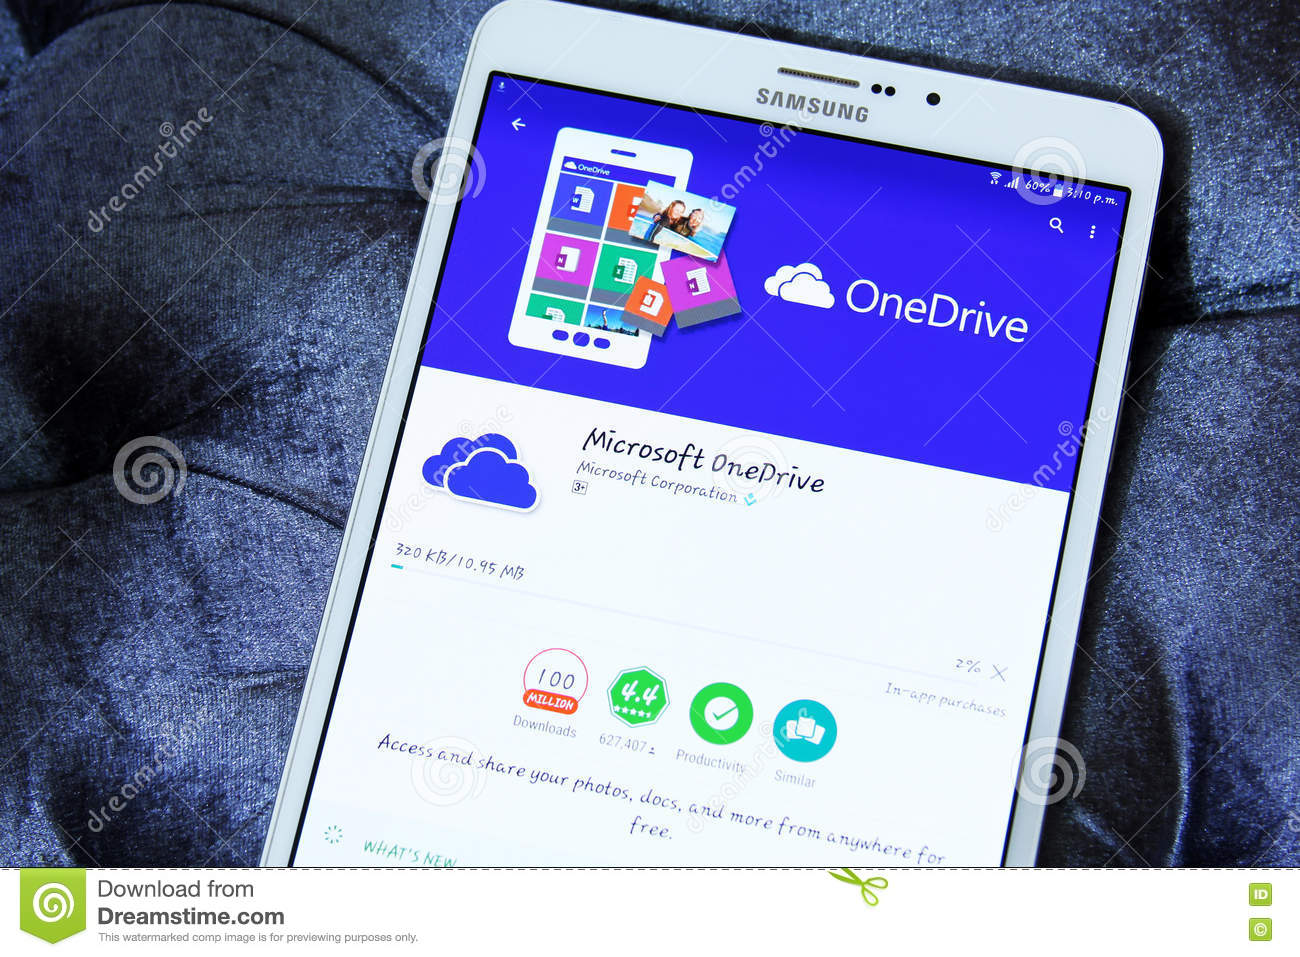 Microsoft onedrive app editorial stock photo  Image of logos - 75384528